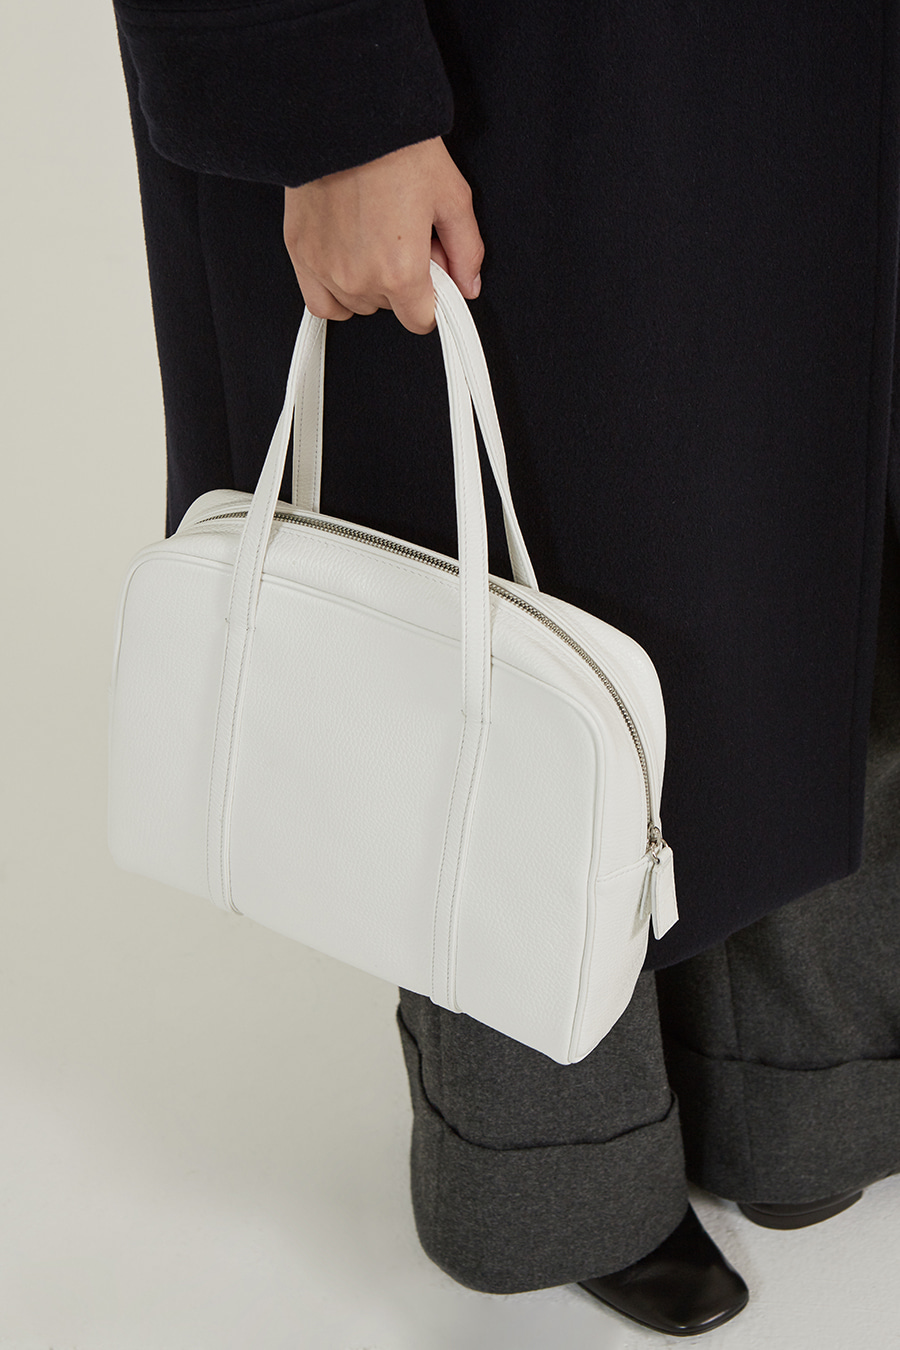 3rd) Boyy Bag White